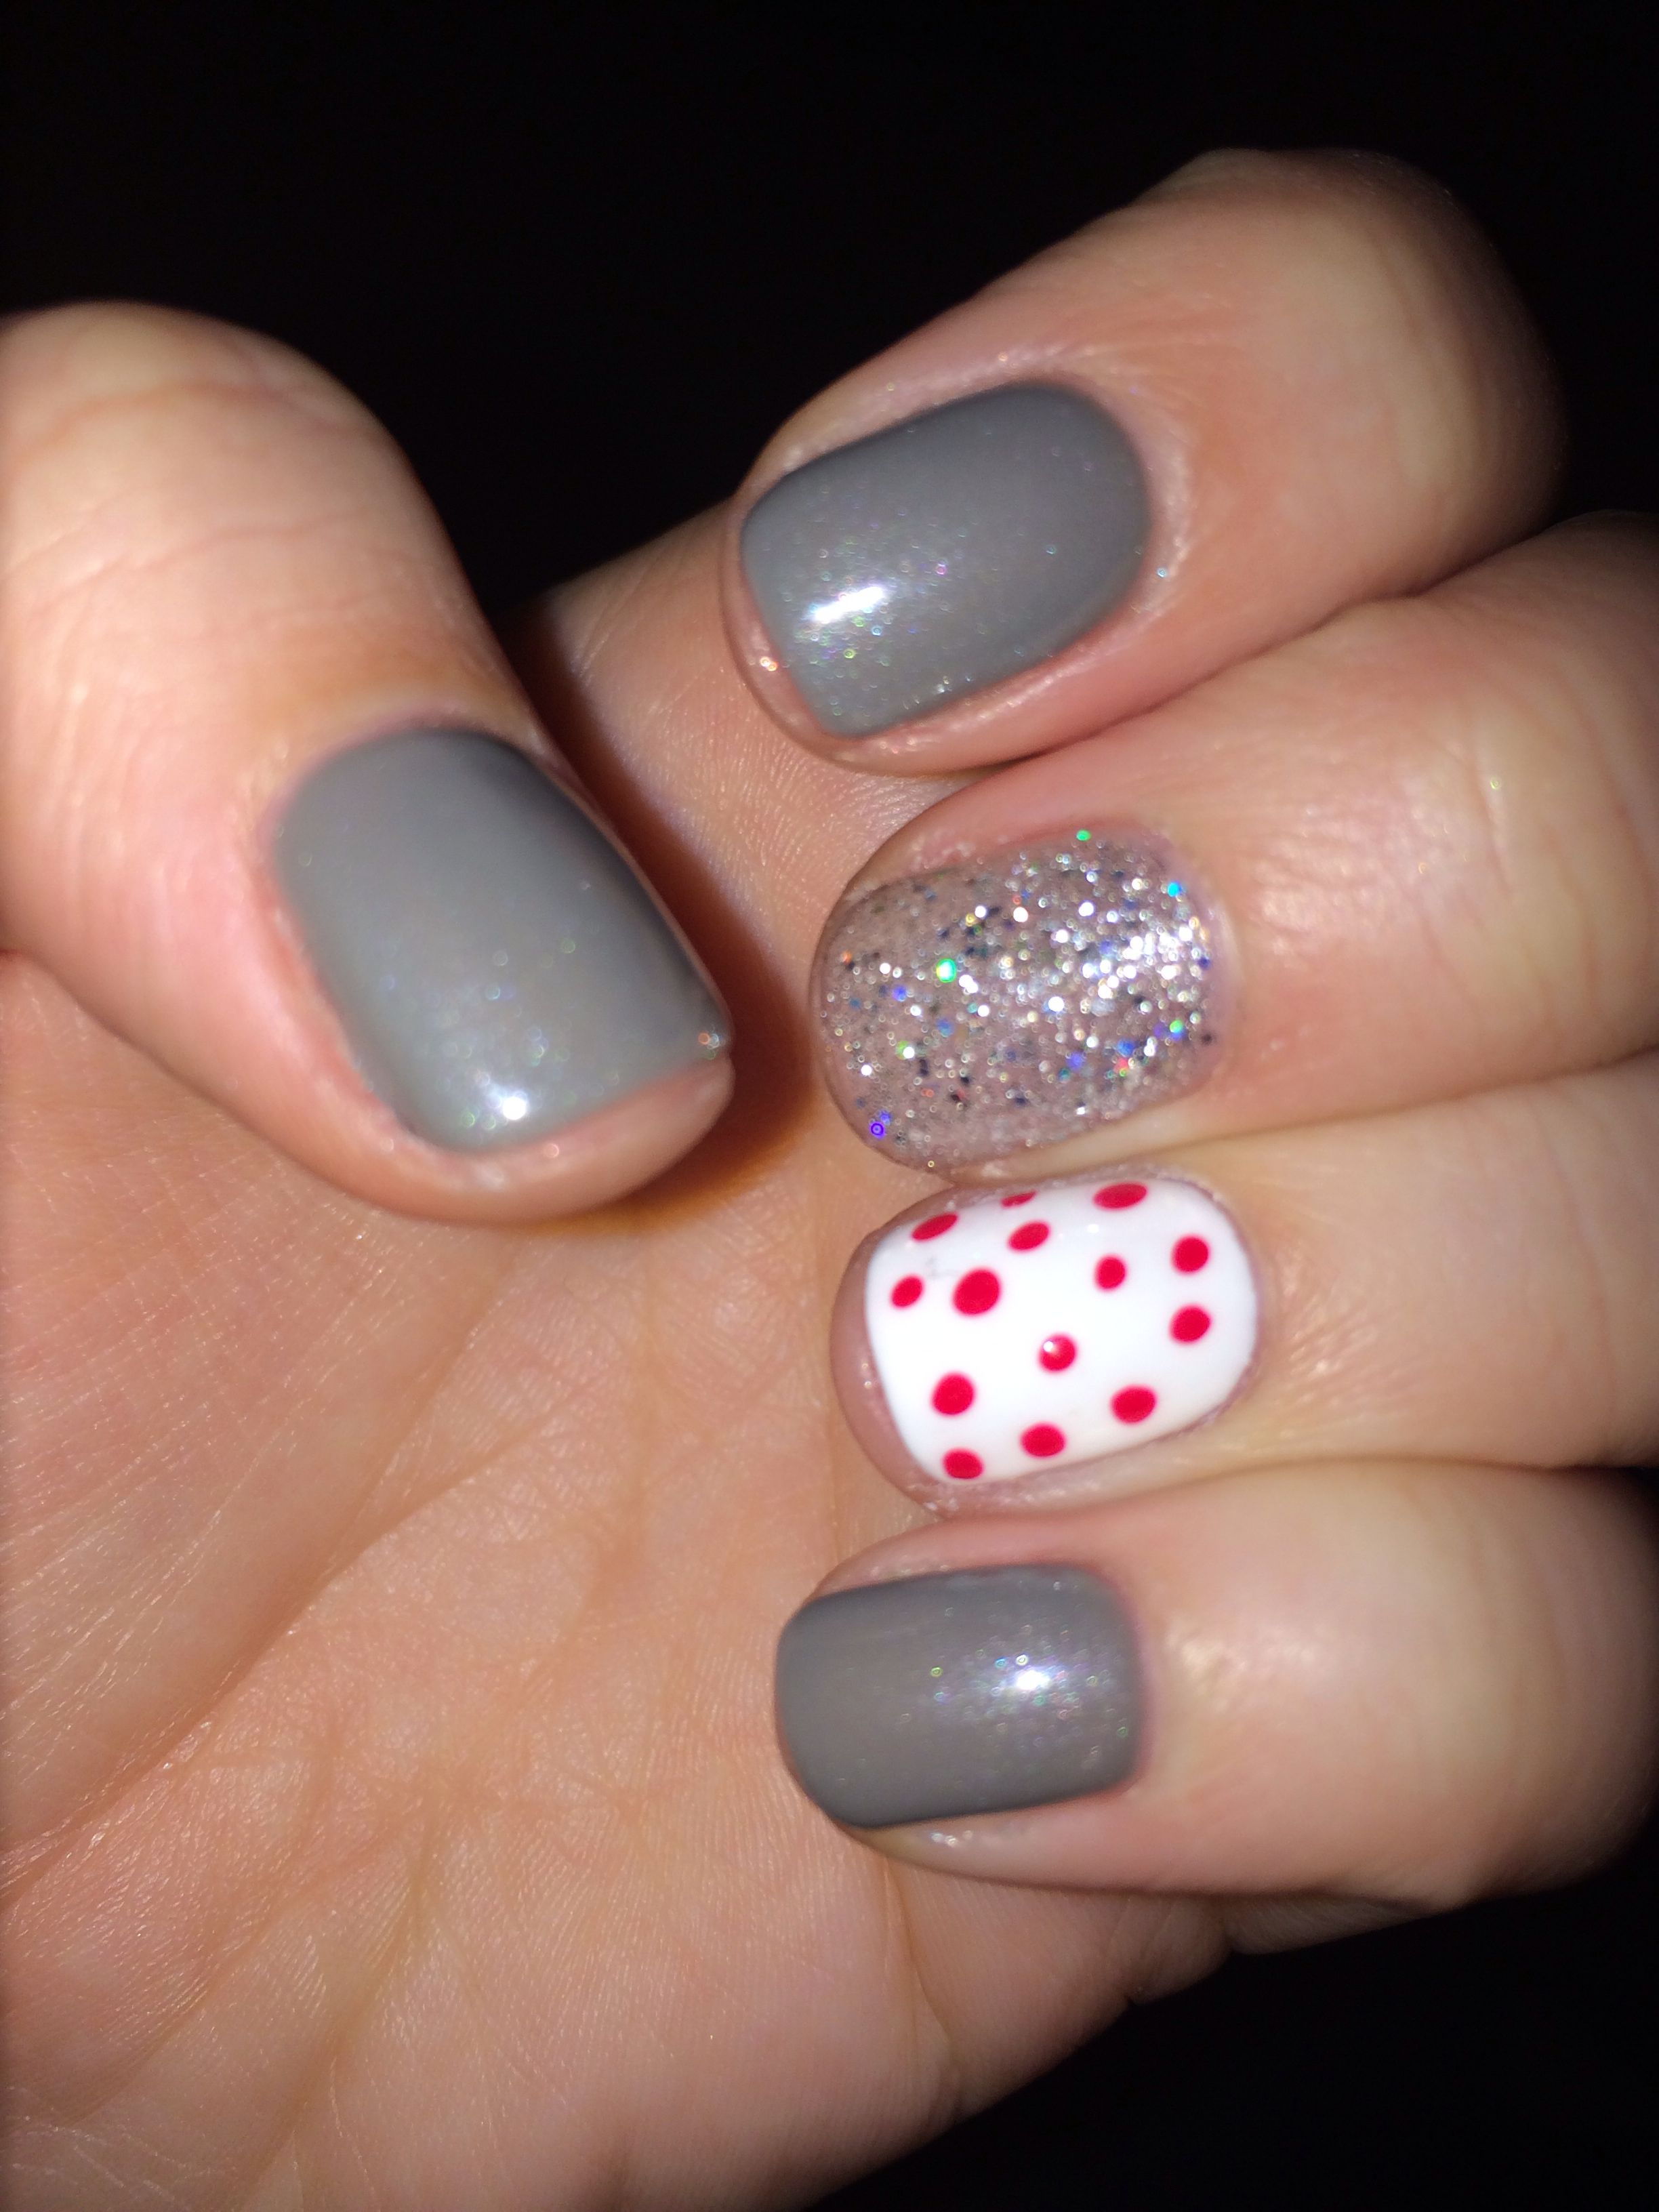 Winter fun gel nails | Nails | Pinterest